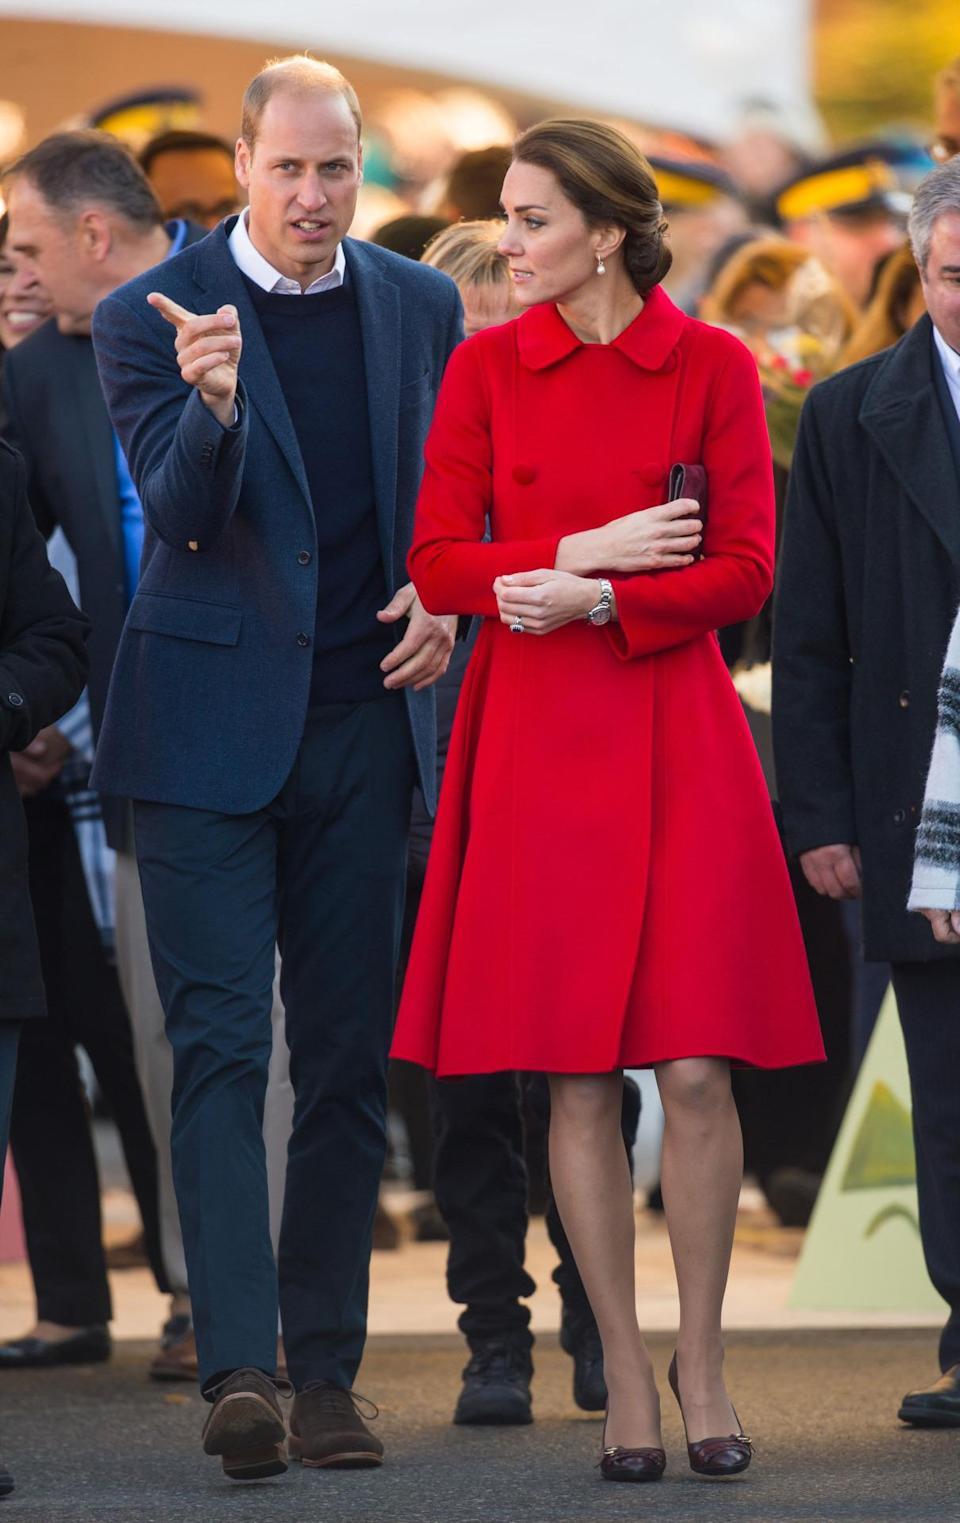 <p>The royal couple spent a day in Yukon, Canada with Kate wearing a bright red coat by Carolina Herrera. The coat is new season but isn't yet available online so keep your eyes peeled. Fringed leather pumps from Tod's and a suede Mulberry clutch finished off the ensemble.</p><p><i>[Photo: PA]</i> </p>